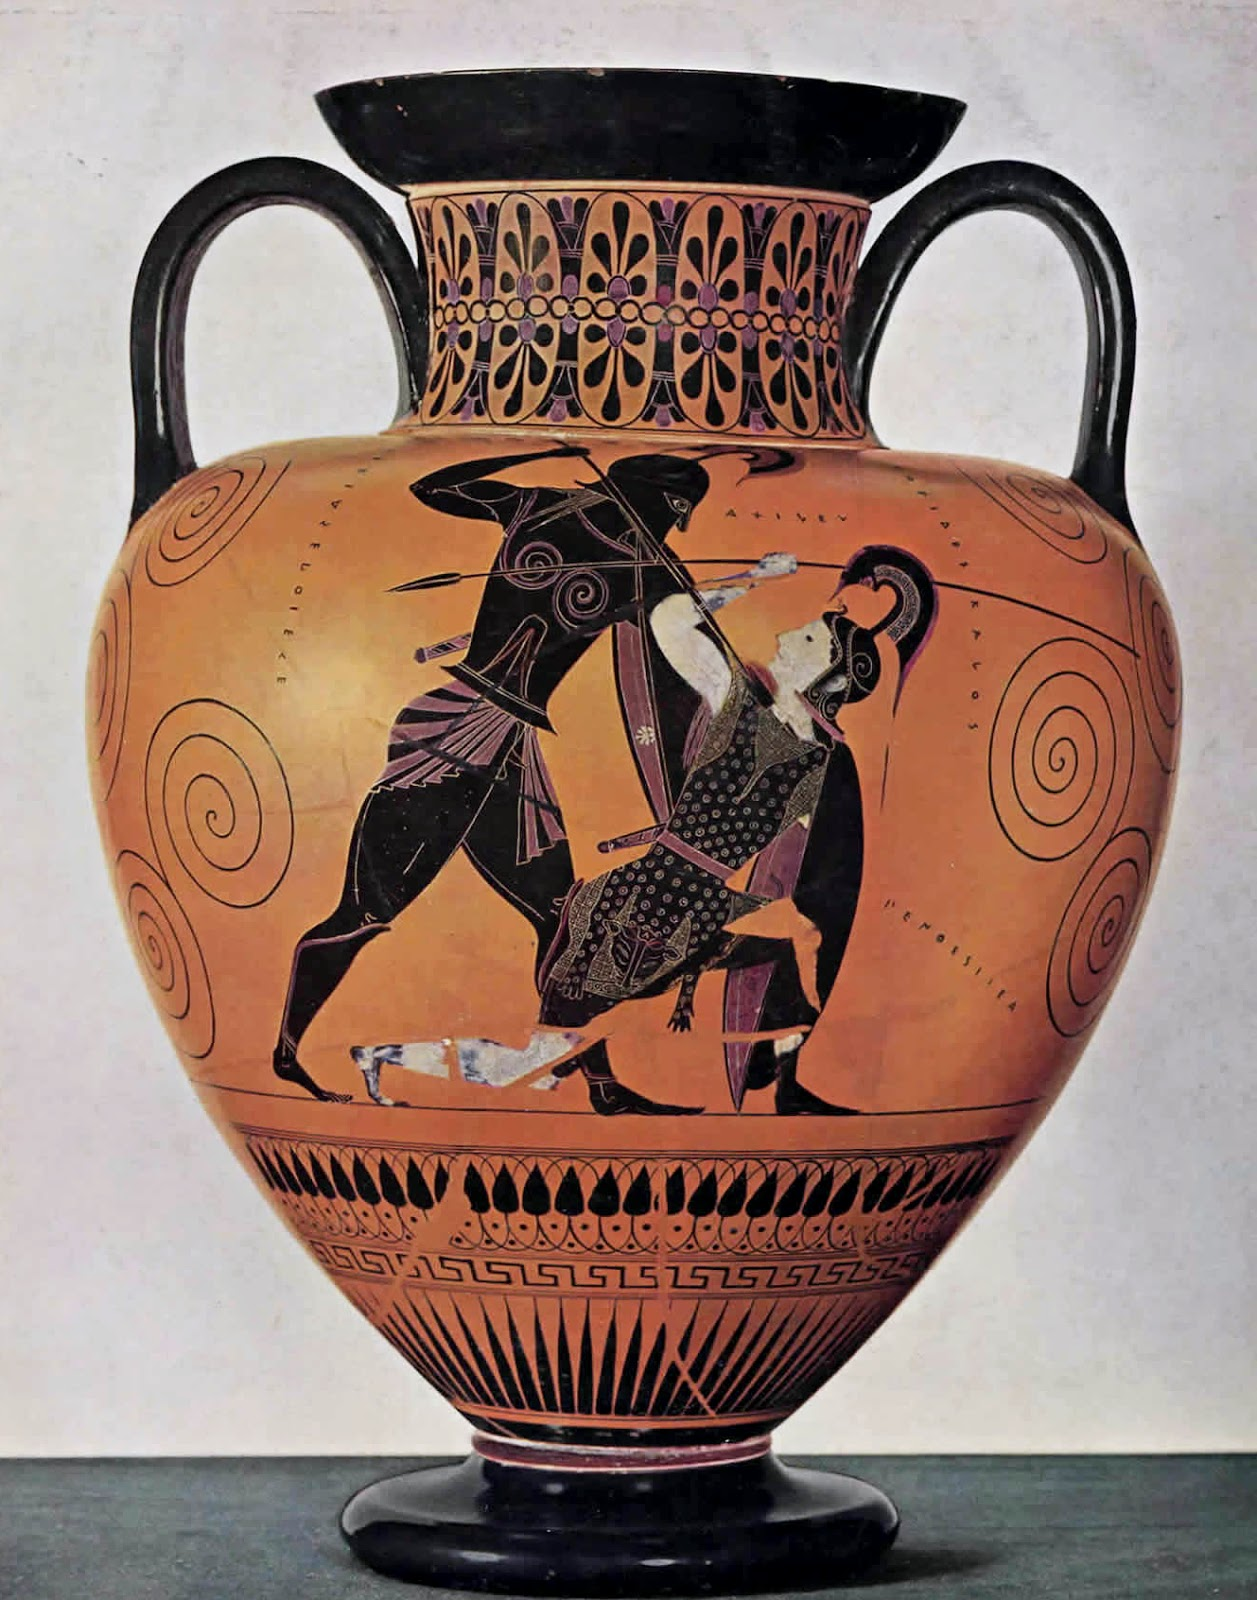 One of my favorite black-figure pieces... Achilles realizing he loves the Amazonian, Penthesilea, in the very moment he thrusts his spear into her heart during a battle for Troy. A tragic end that may serve as a metaphor to this two-part blog. But what do I know.